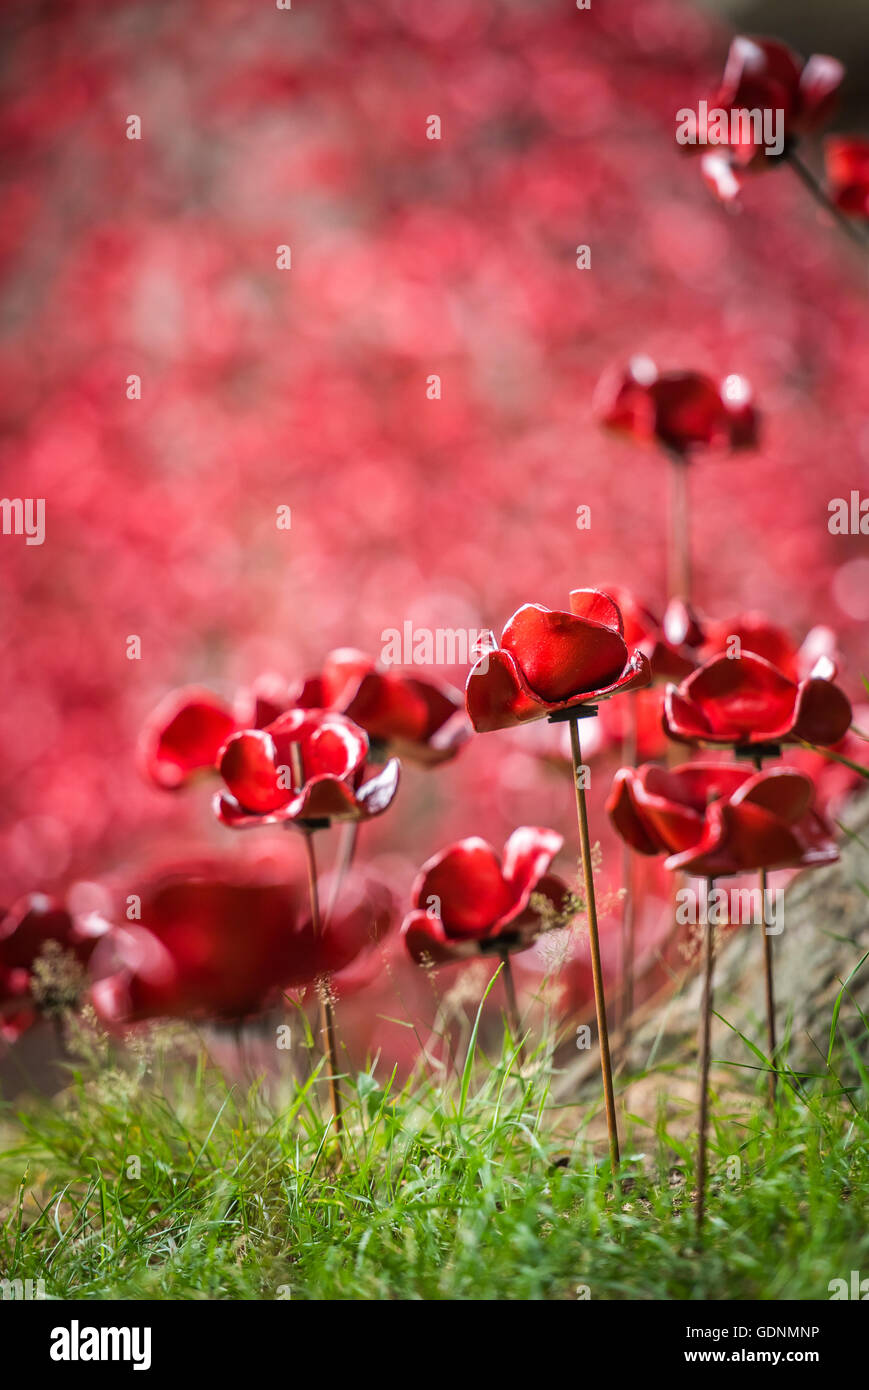 A sea of poppies at the Weeping Window display at the Black Watch Museum in Perth Scotland - Stock Image